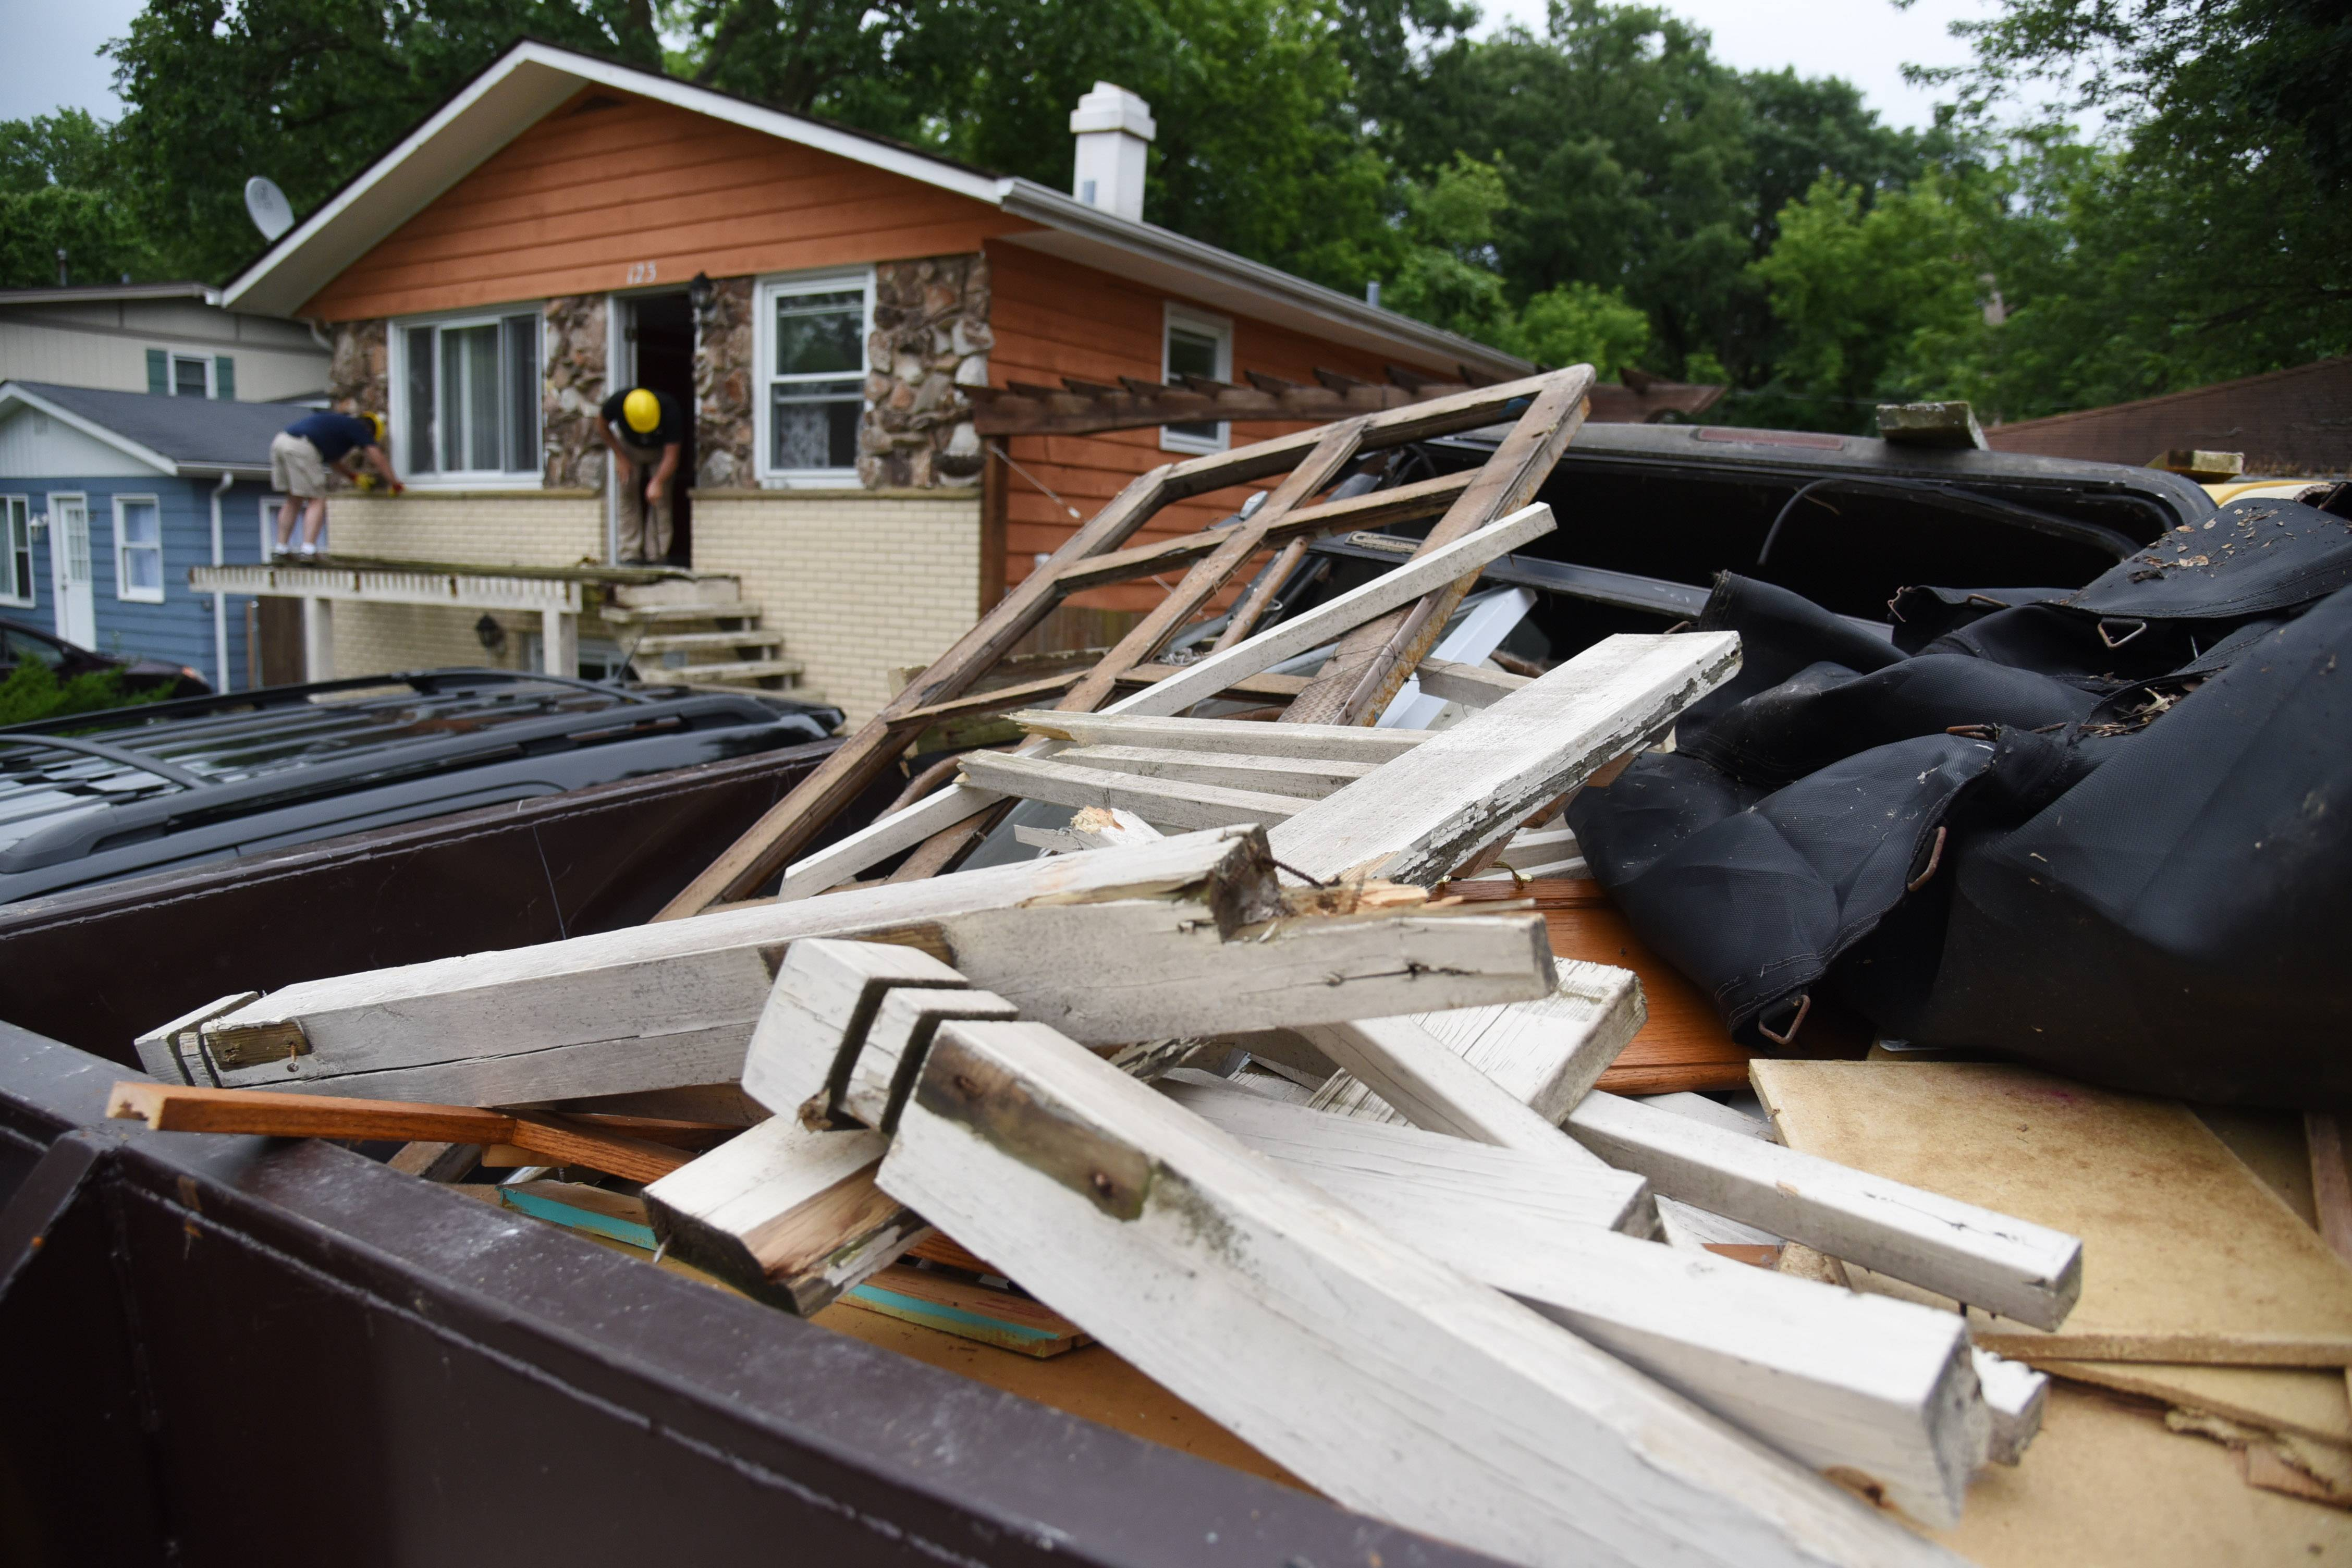 A Dumpster was quickly filled with debris Friday morning by volunteers working with the Affordable Housing Corporation of Lake County to rehab the house on Woodland Drive in Round Lake Beach.